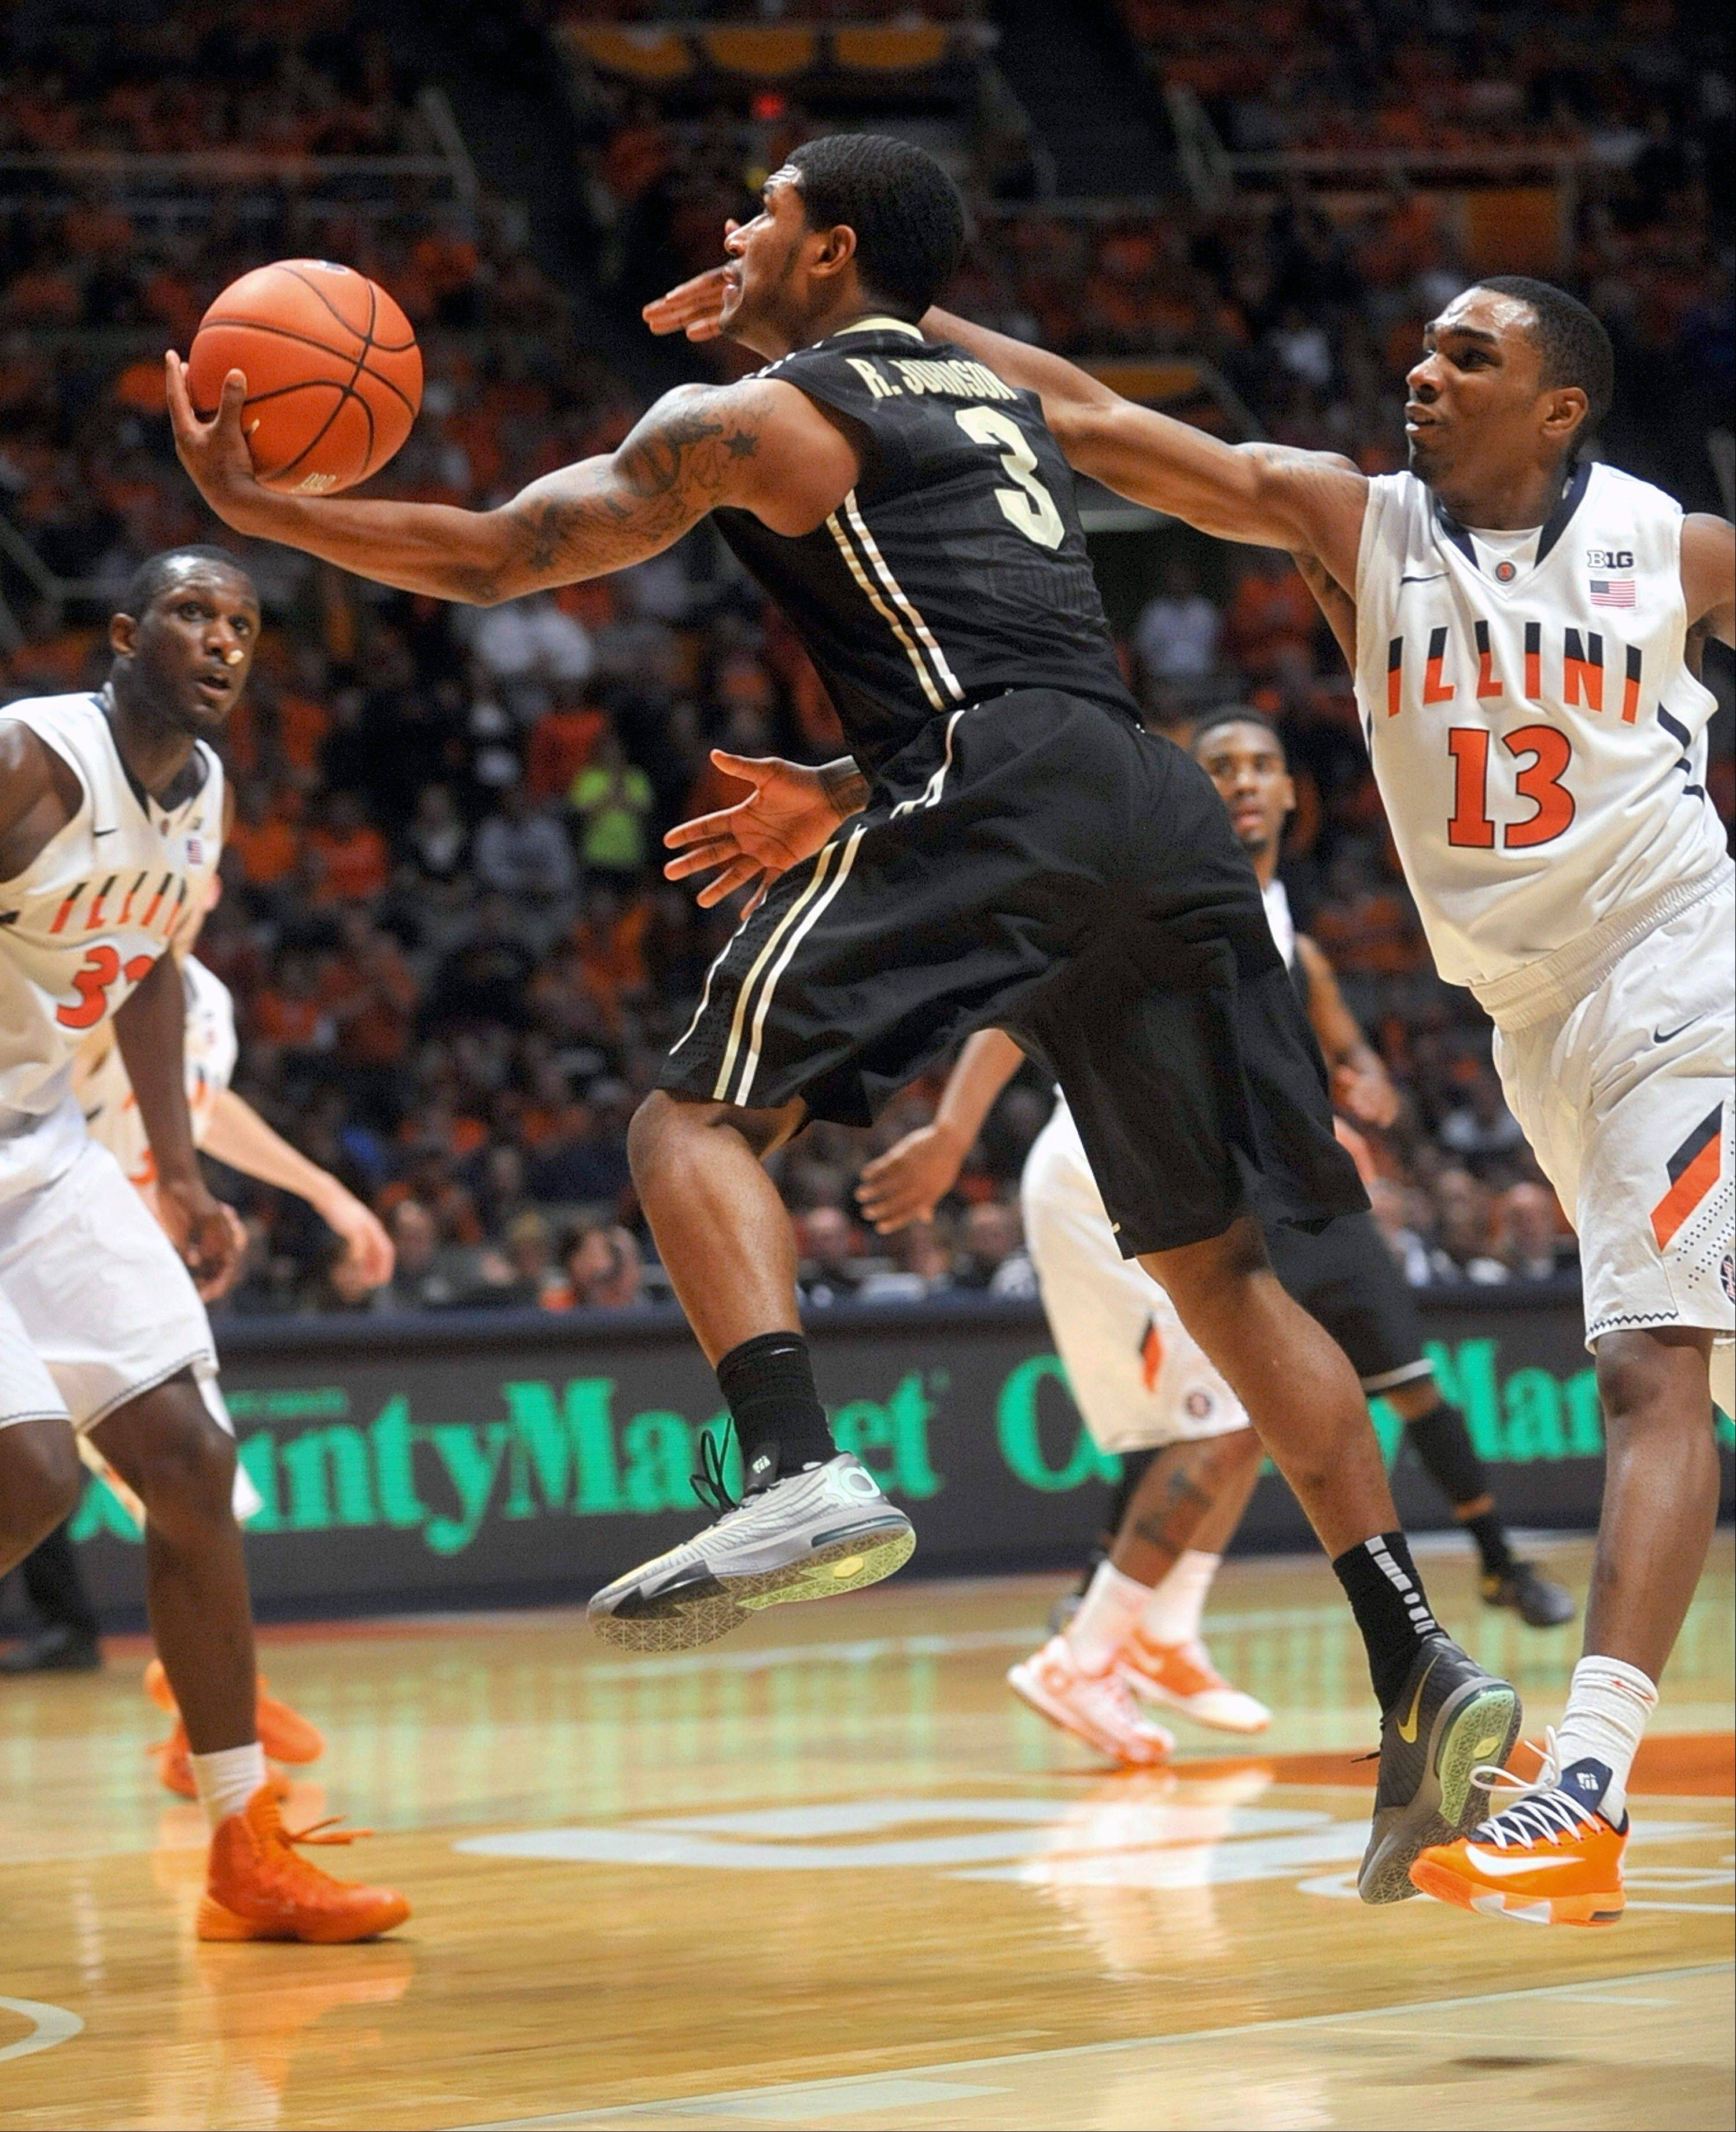 Purdue guard Ronnie Johnson (3) glides past Illinois guard Tracy Abrams (13) during the second half of an NCAA college basketball game Wednesday in Champaign. Purdue won 66-58.